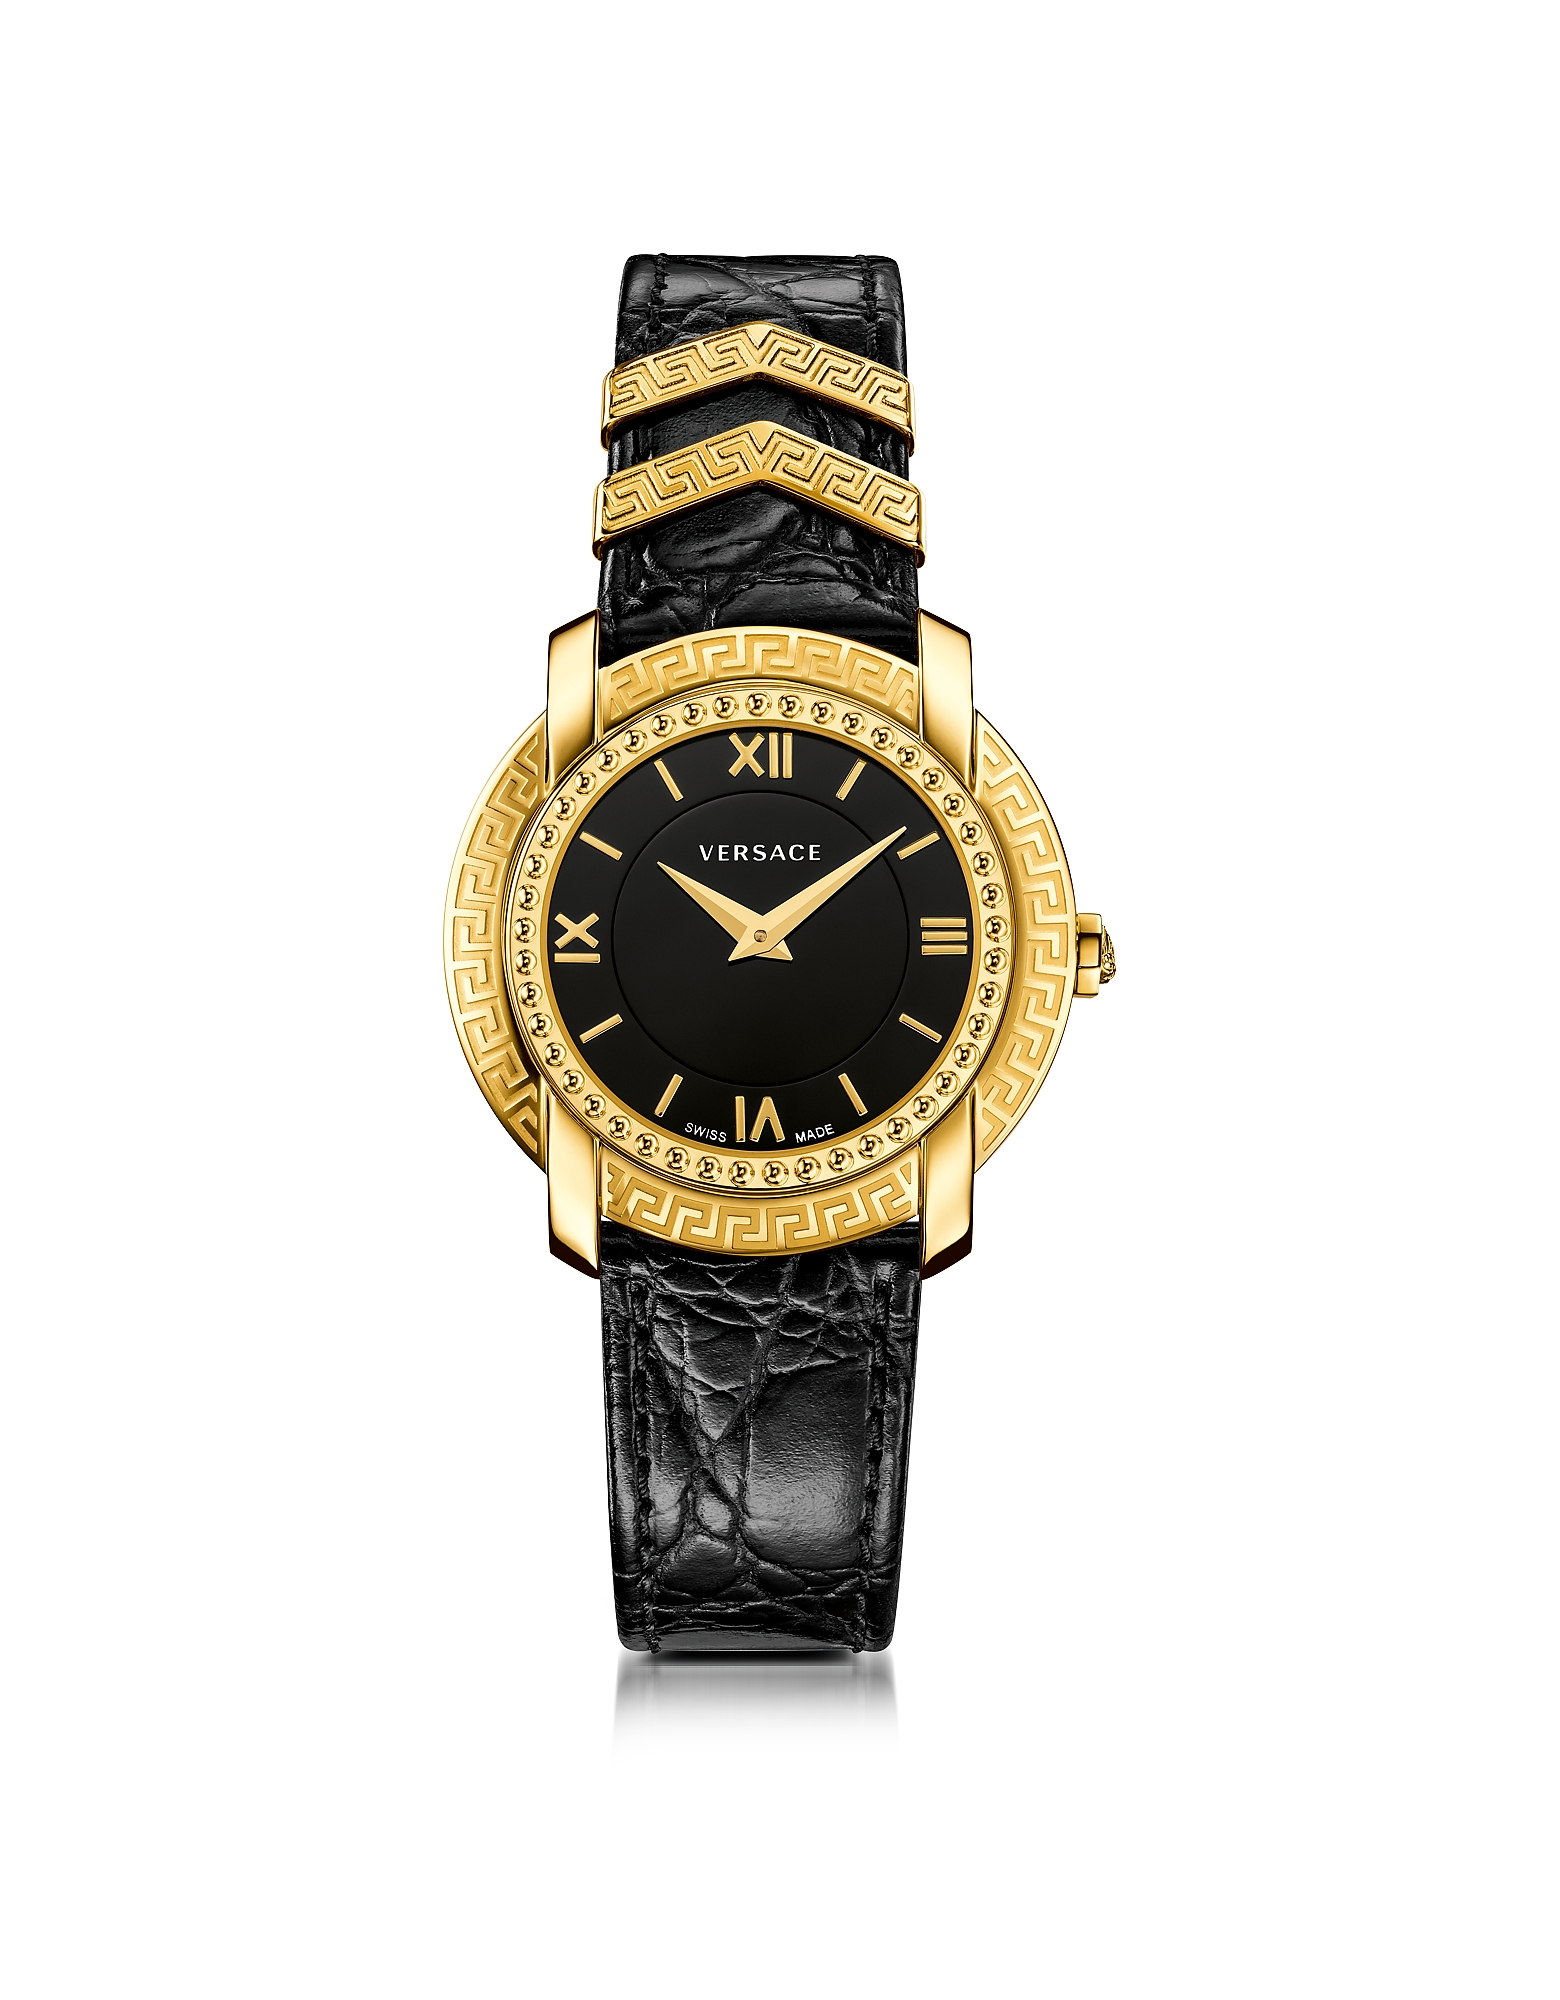 Versace Women's Watches, DV25 Round Black and Gold Women's Watch w/Croco Embossed Band and Metal Ins